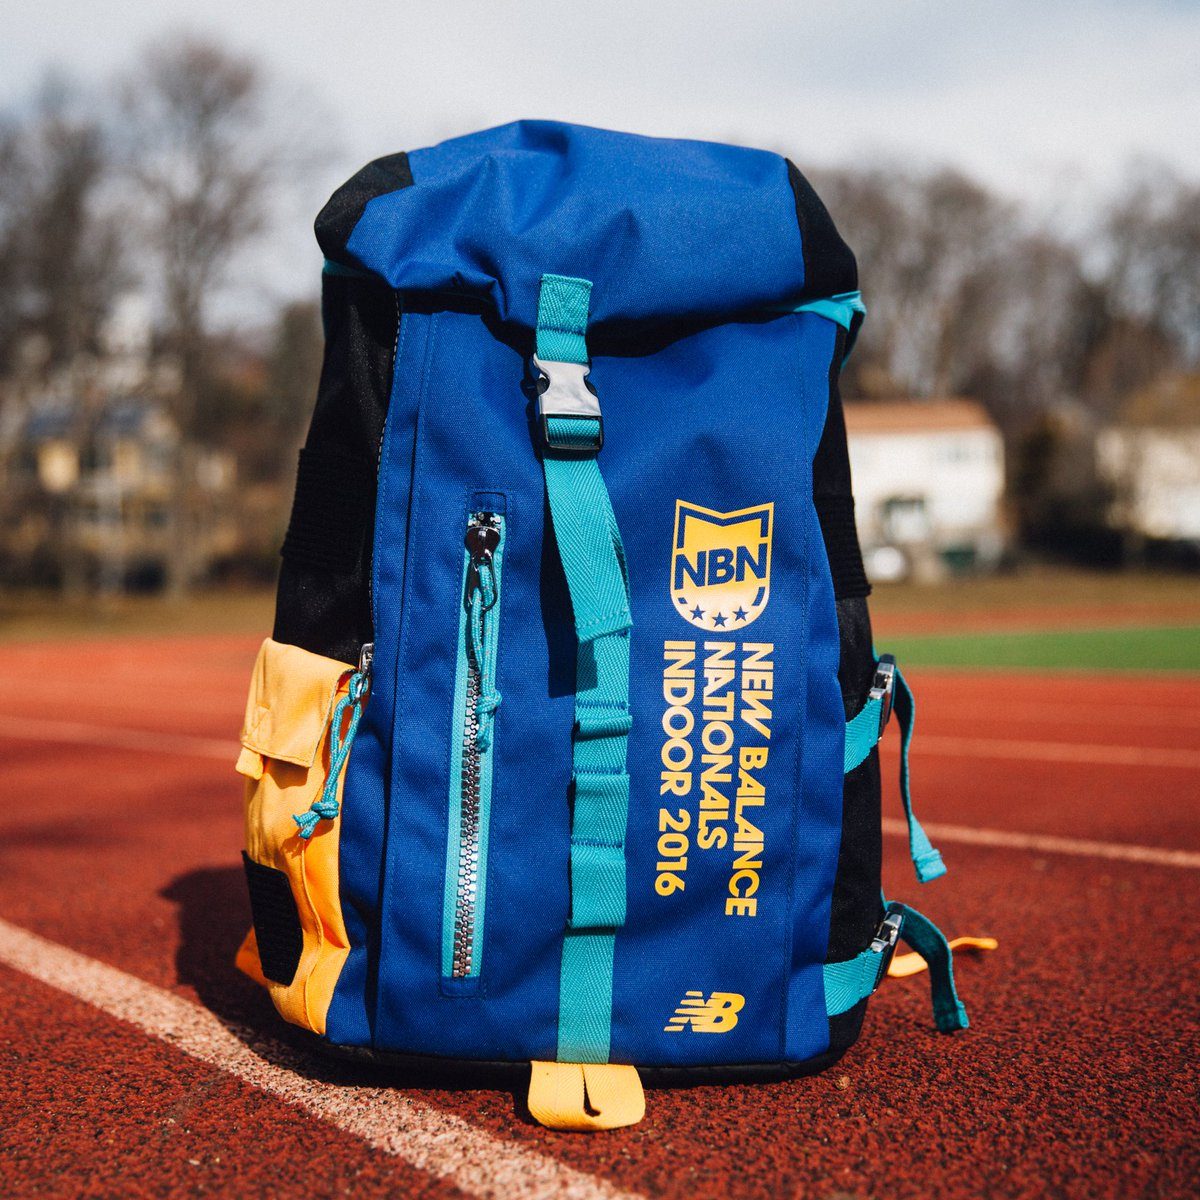 Introducing the 2016 #NBNationals Indoor backpack. ⚡️  See more & sign up for customization: https://t.co/gV7l6vImjS https://t.co/My0iVf5cml